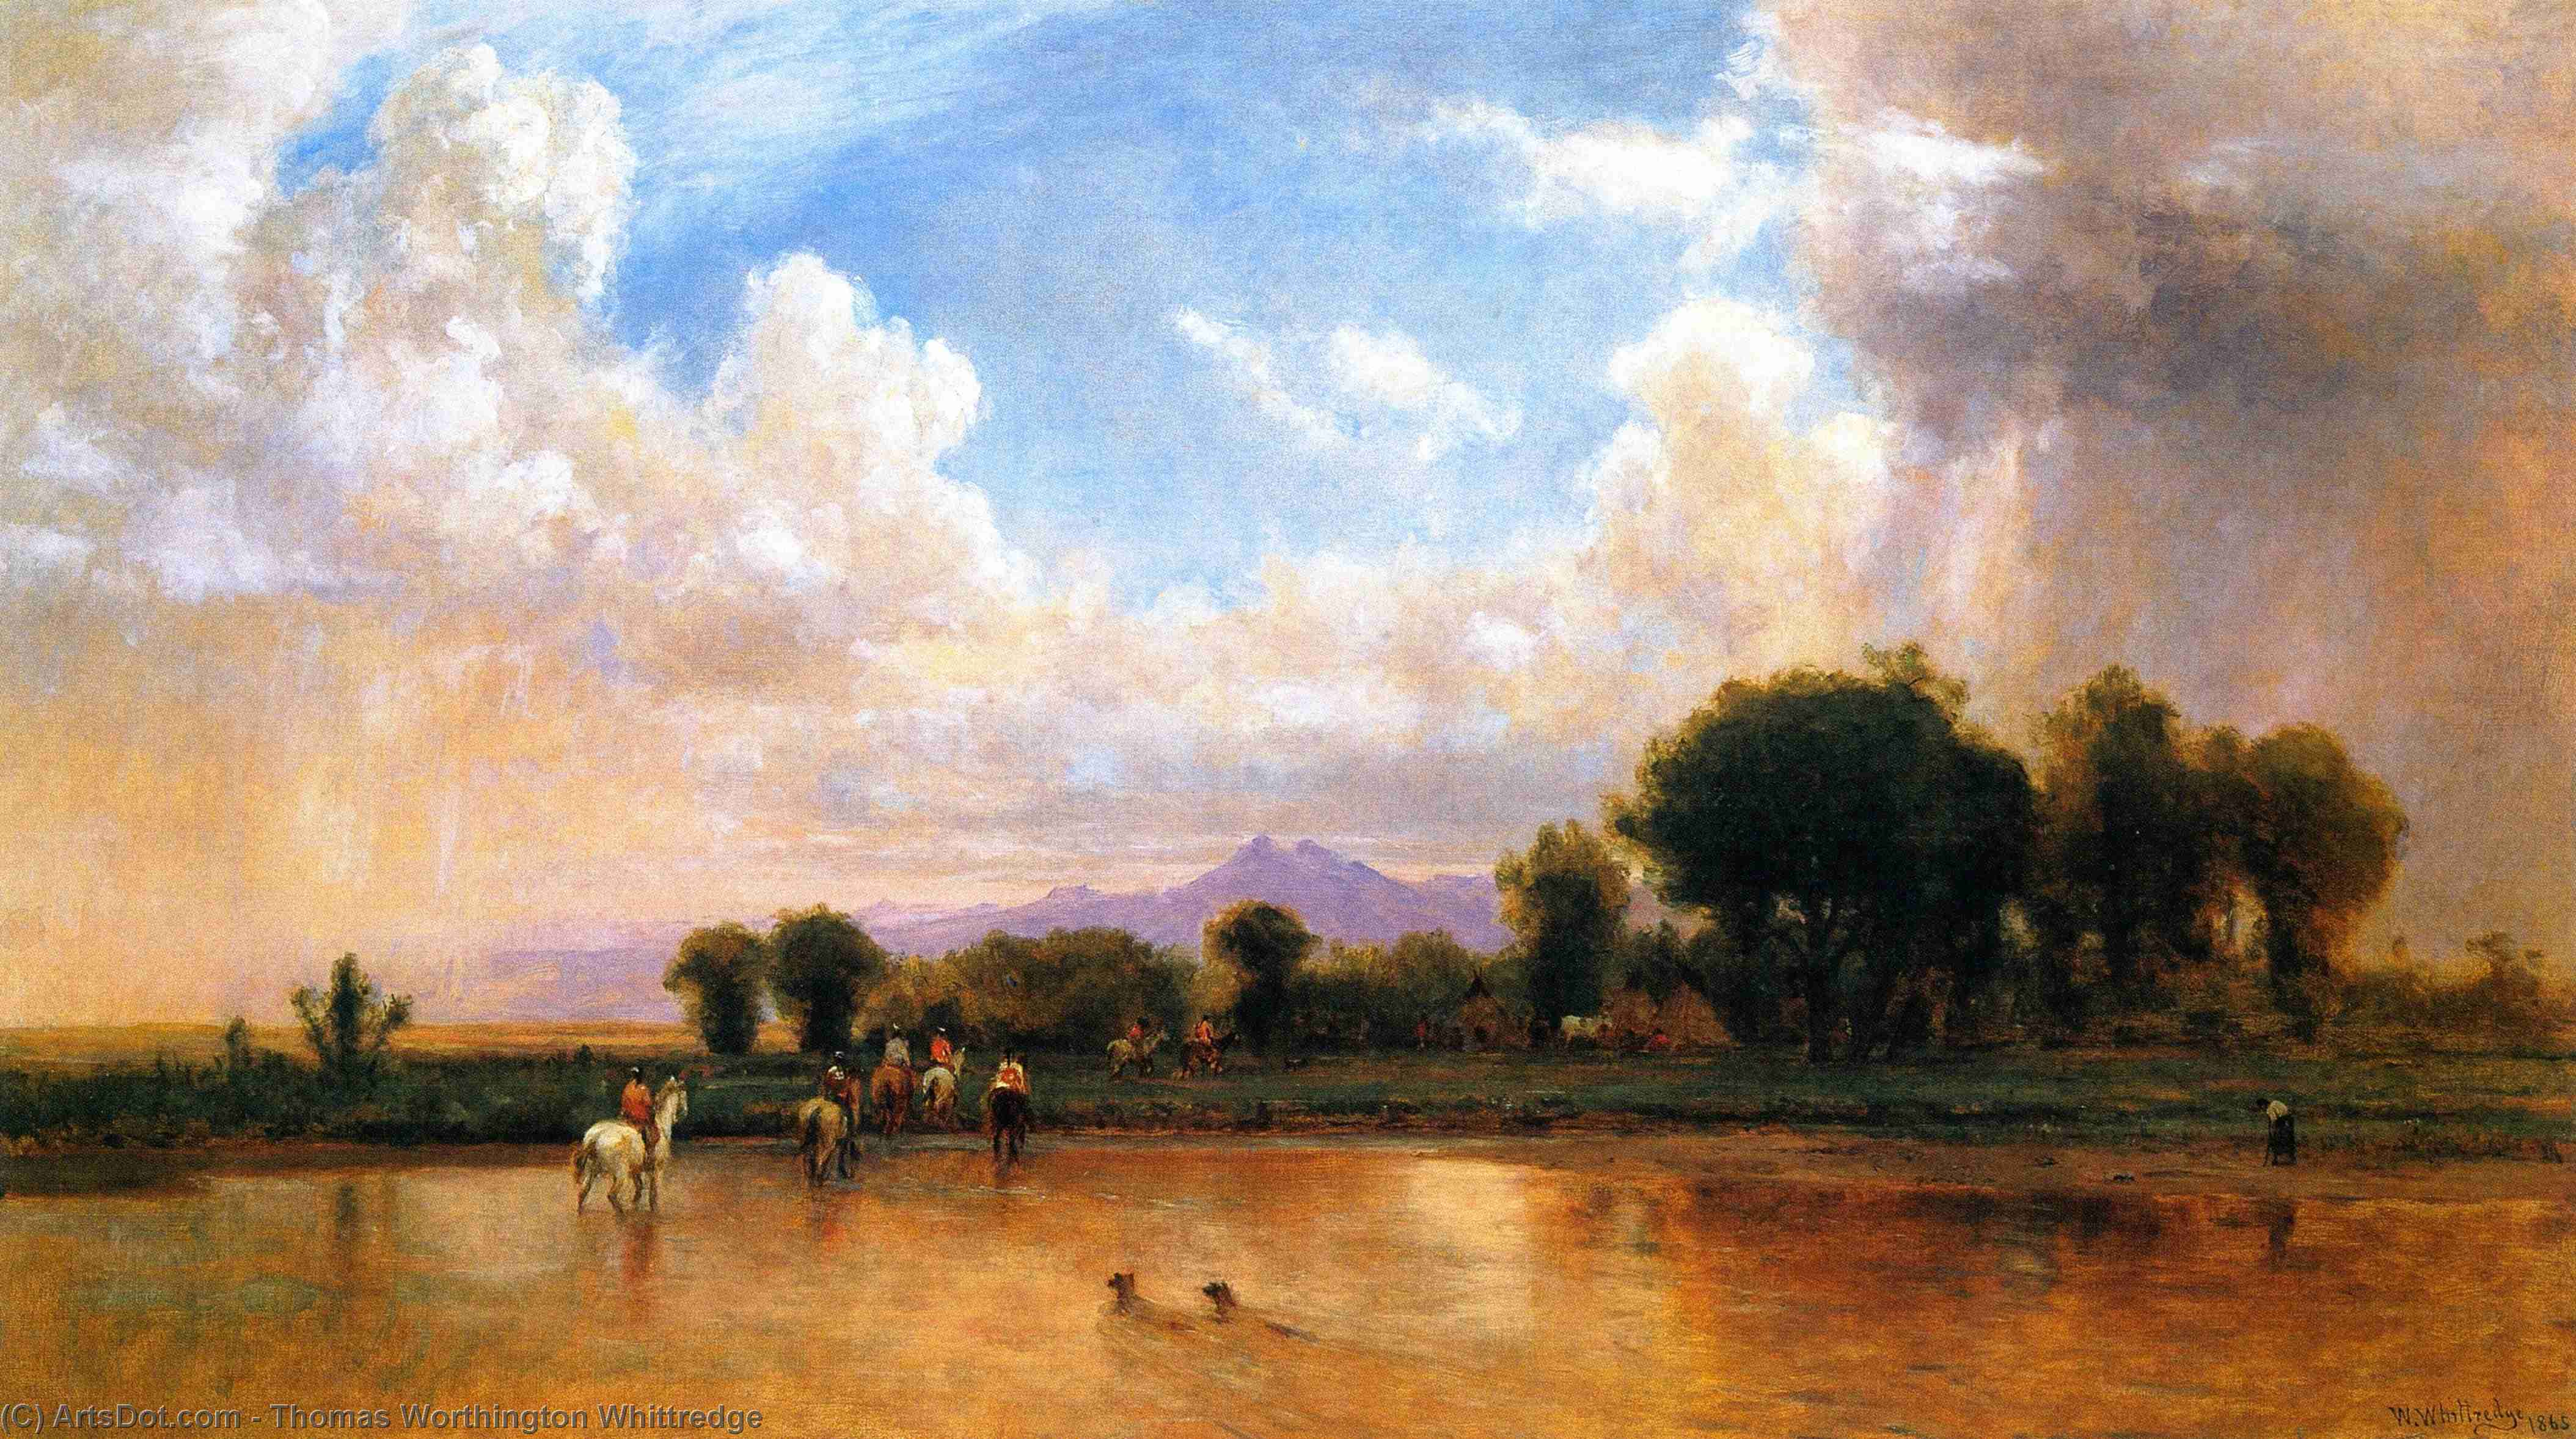 On the Plains, Cache la Poudre River, 1866 by Thomas Worthington Whittredge (1820-1910, United States) | Paintings Reproductions Thomas Worthington Whittredge | ArtsDot.com